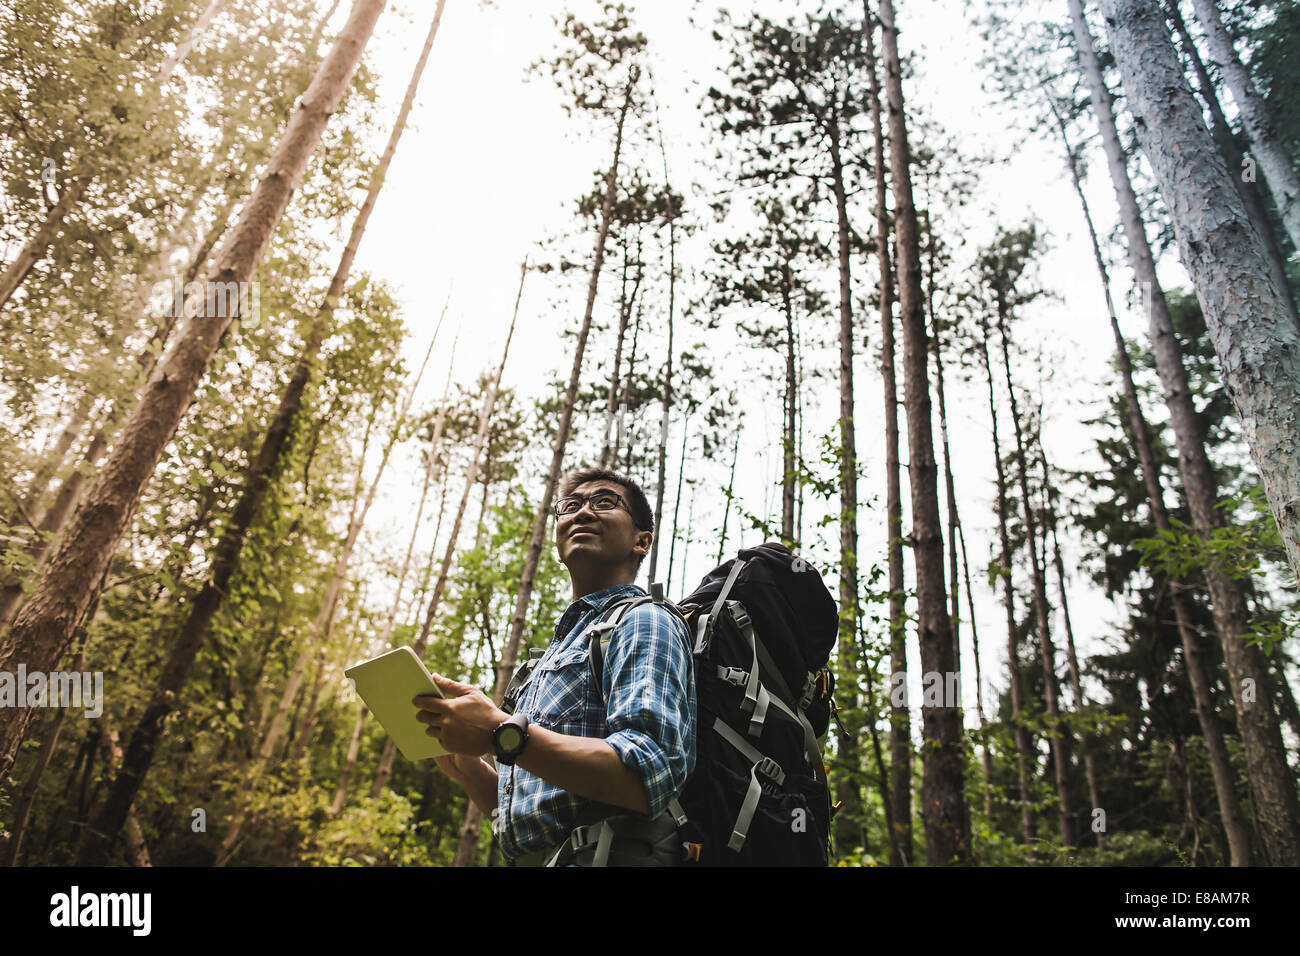 Hiker in forest using digital tablet Stock Photo